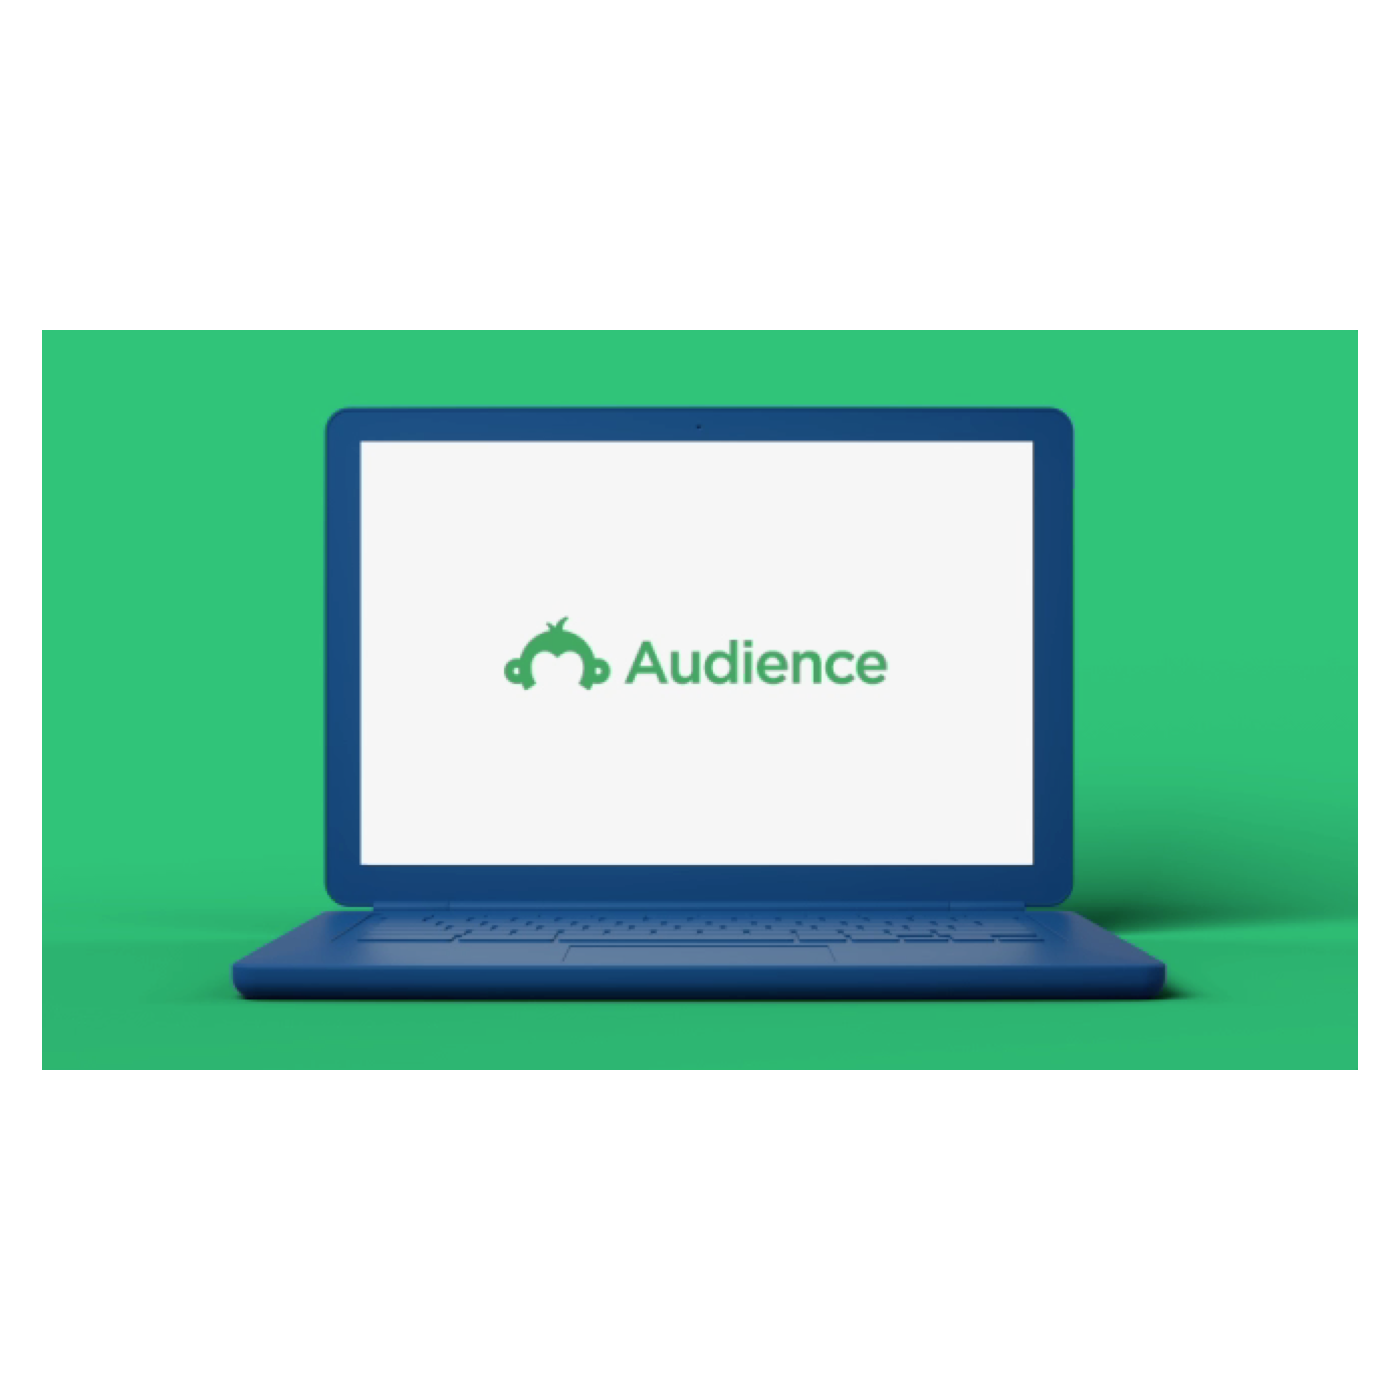 Computer with Audience logo